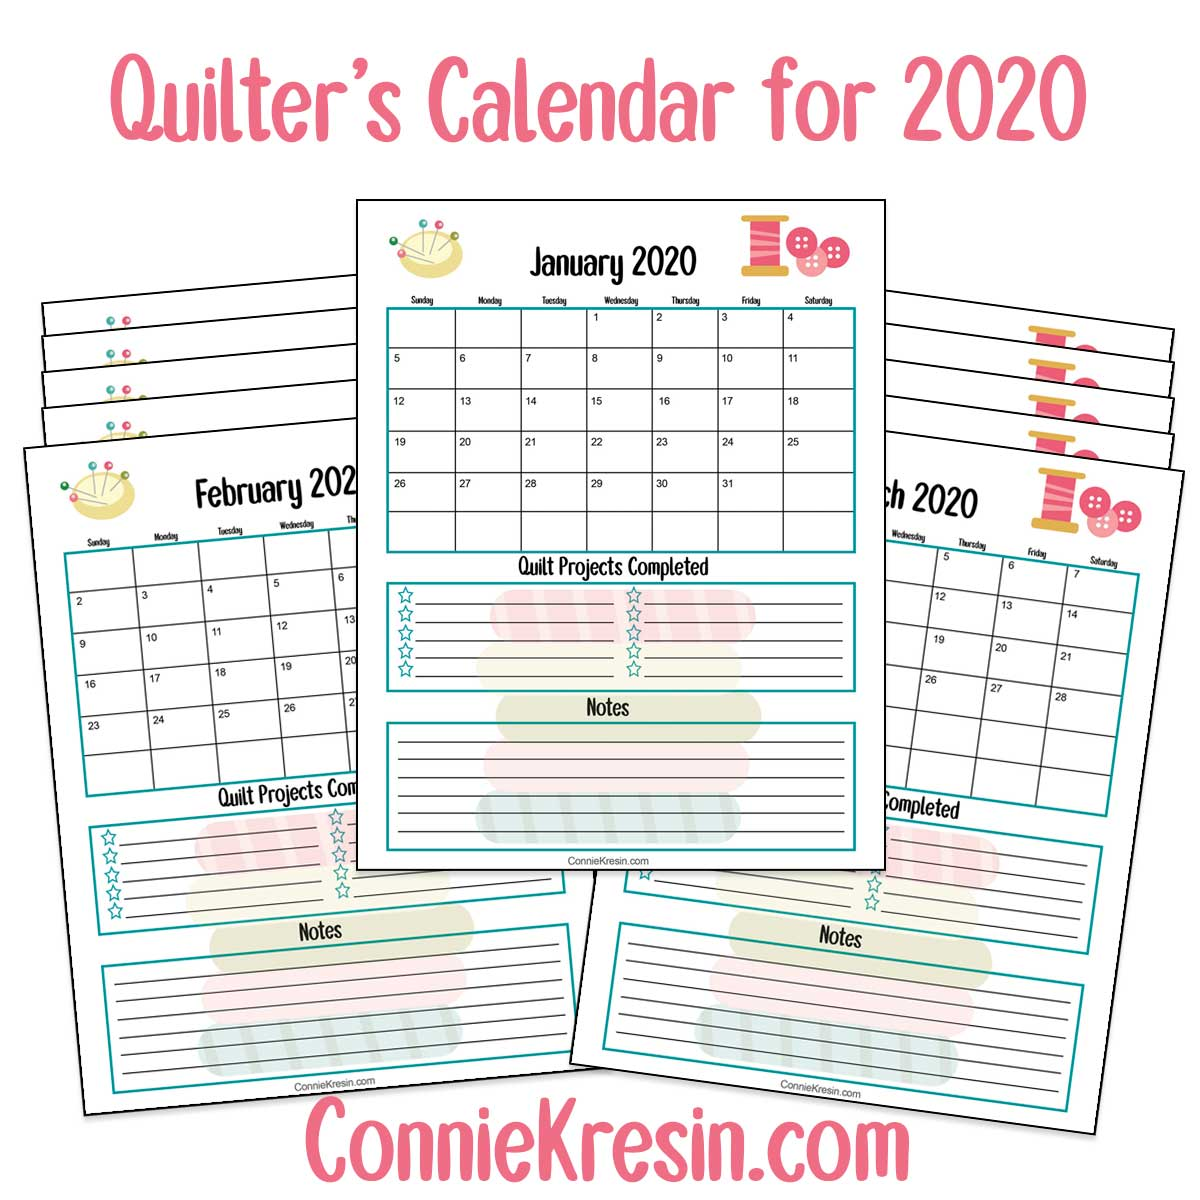 Free downloadable Quilters Calendar for 2020